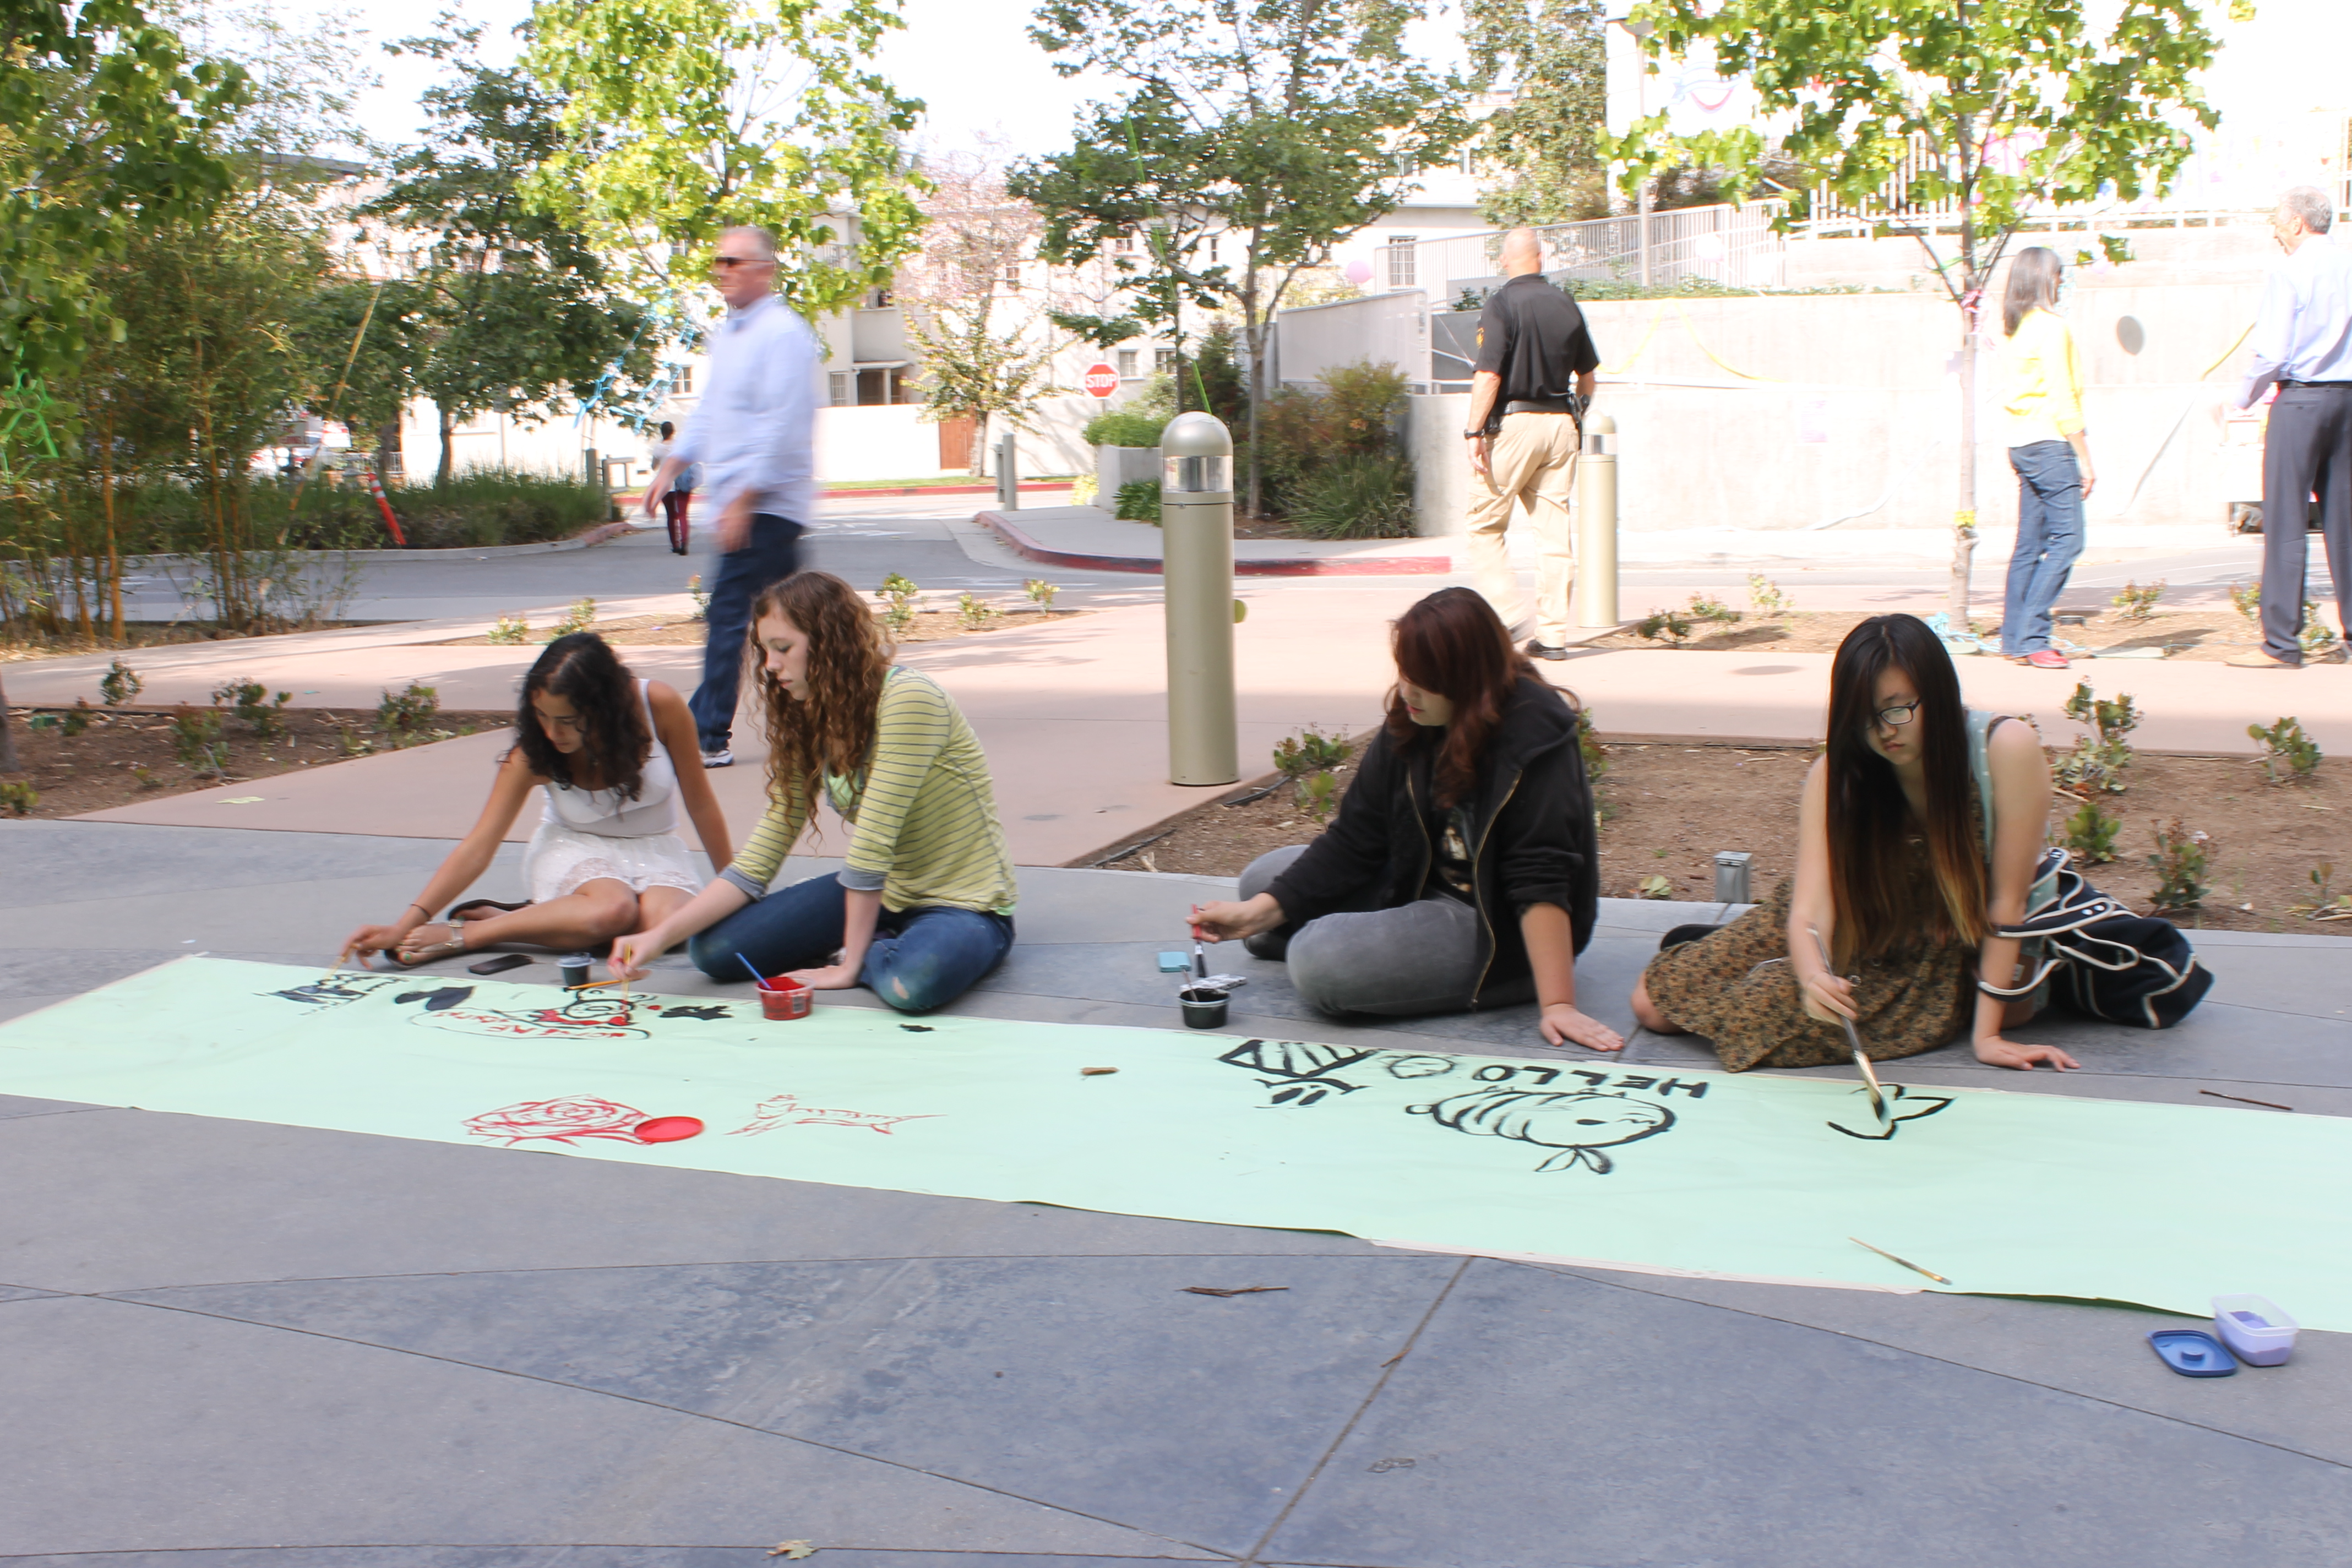 Participants paint on a long spread of paper at the painting station.